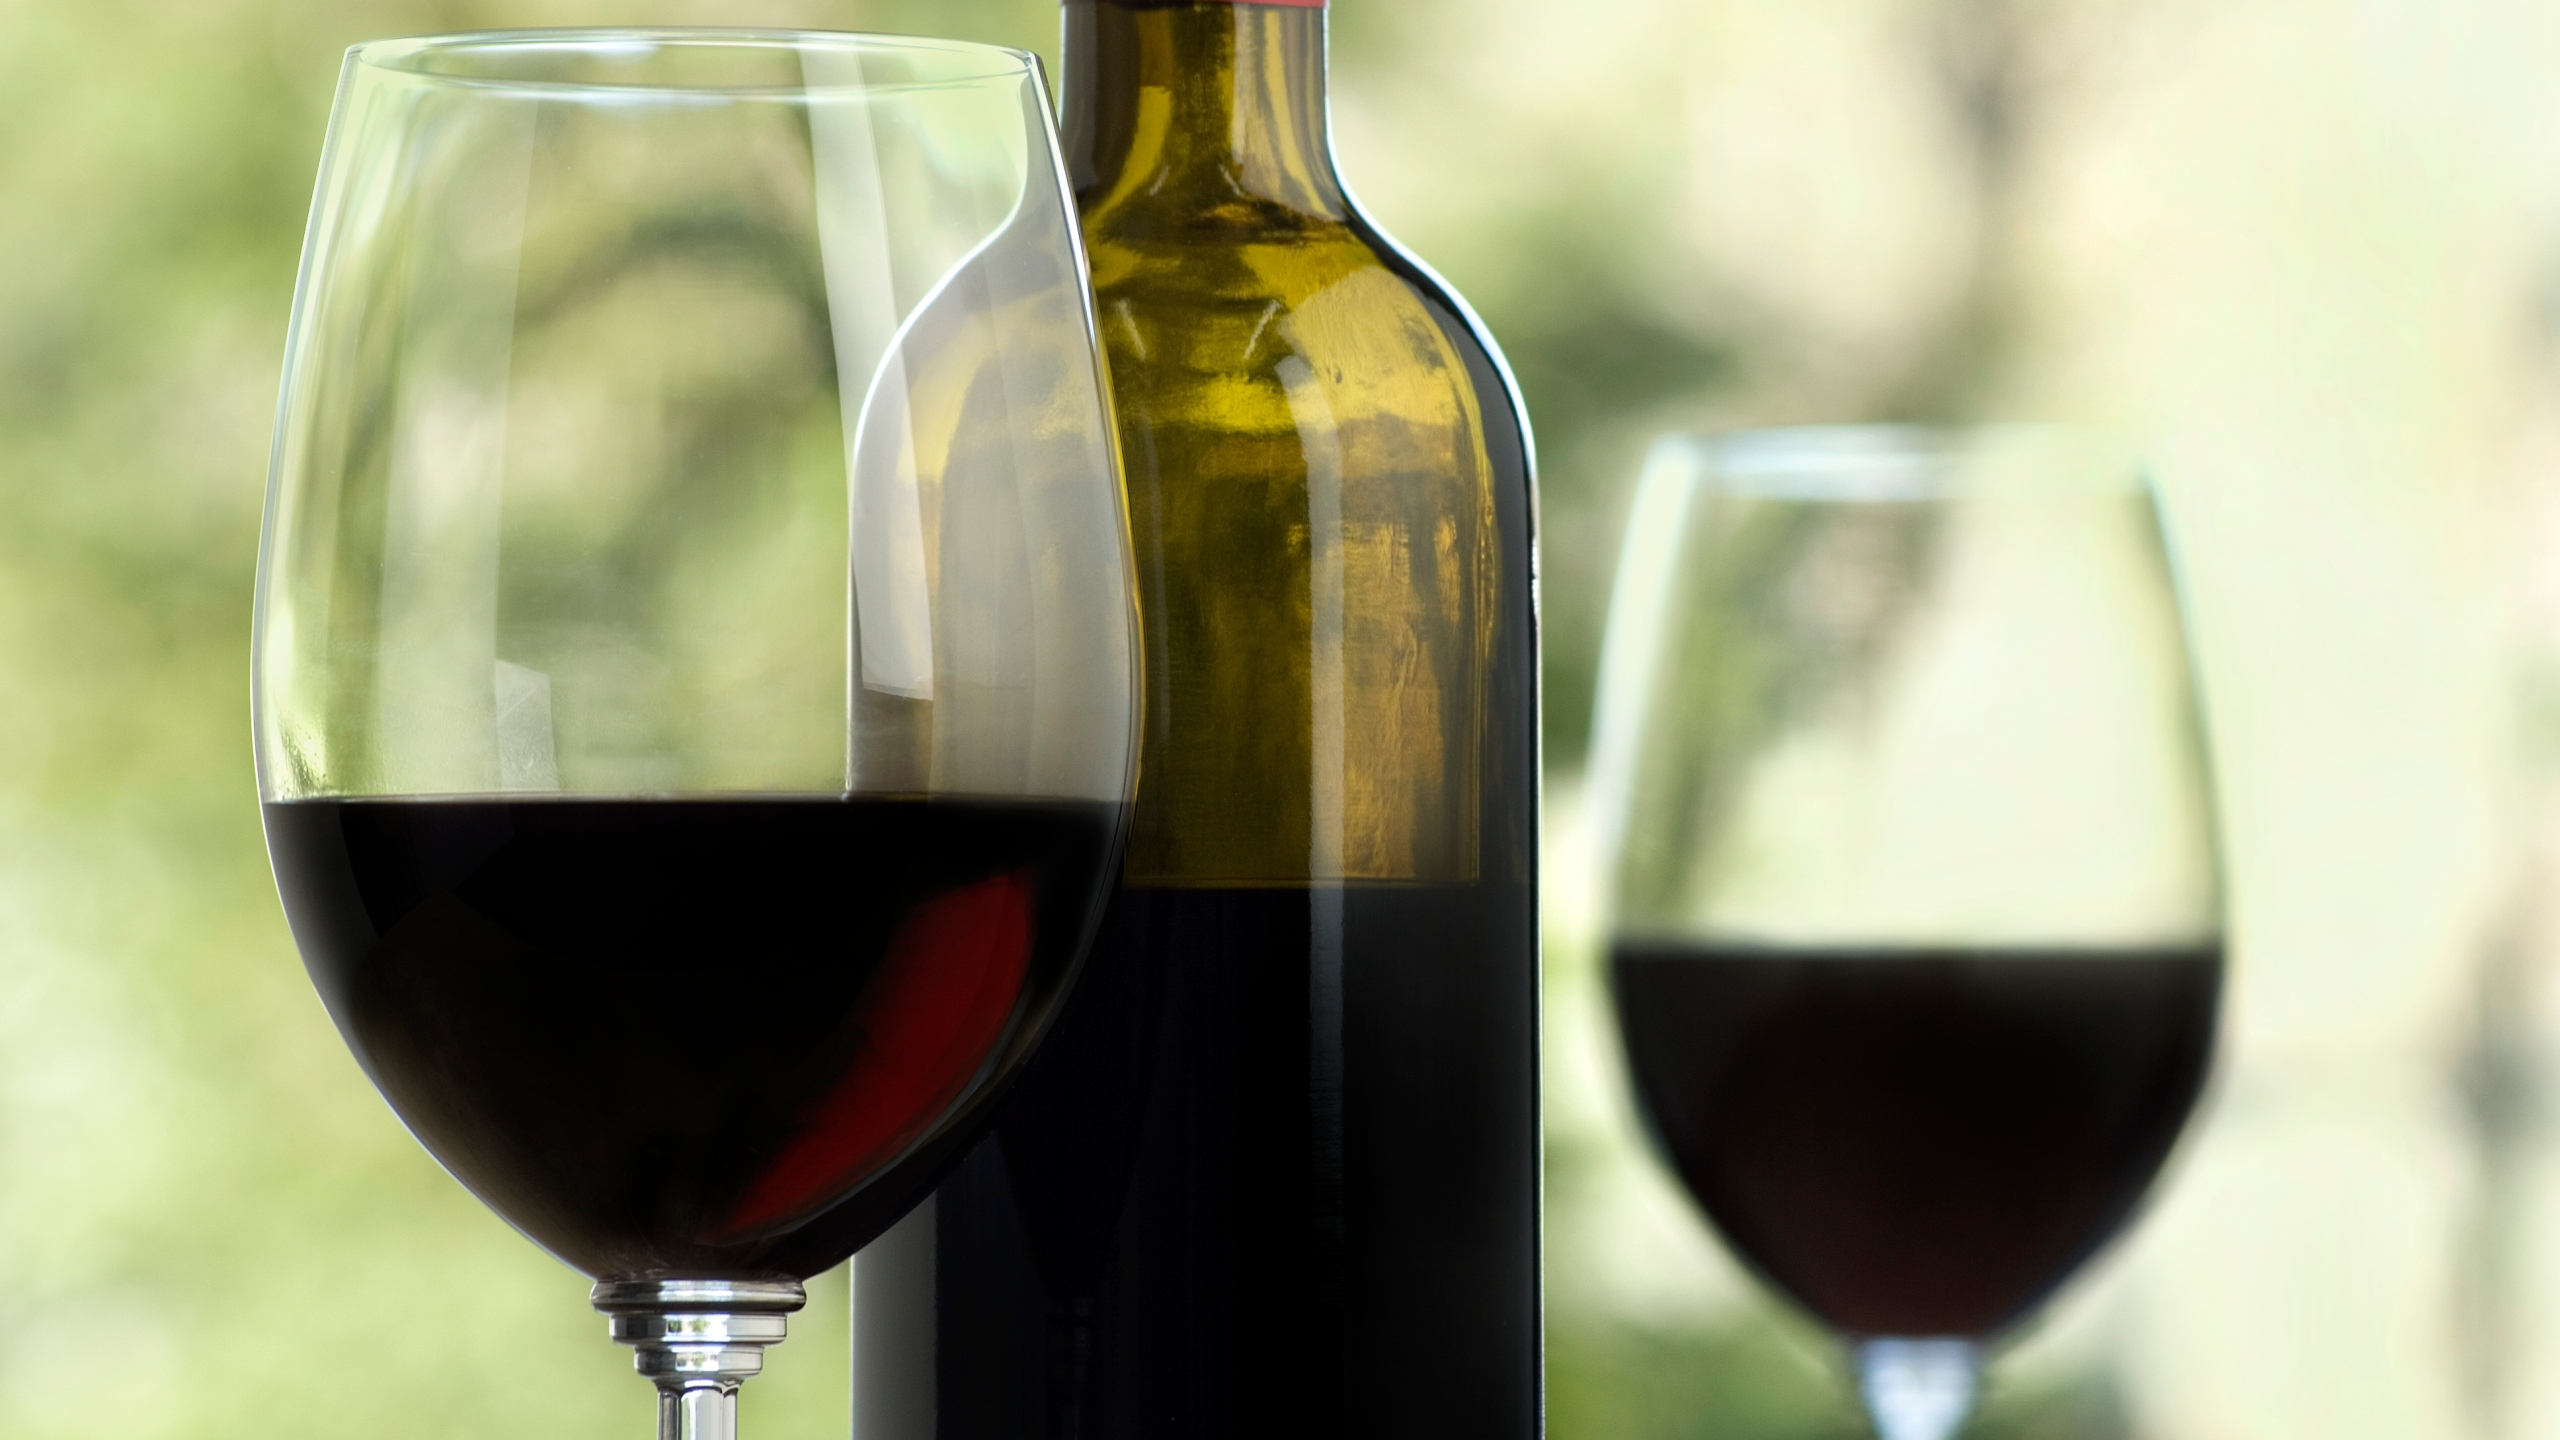 A file photo shows a bottle and two glasses of wine. (Credit: Getty Images)